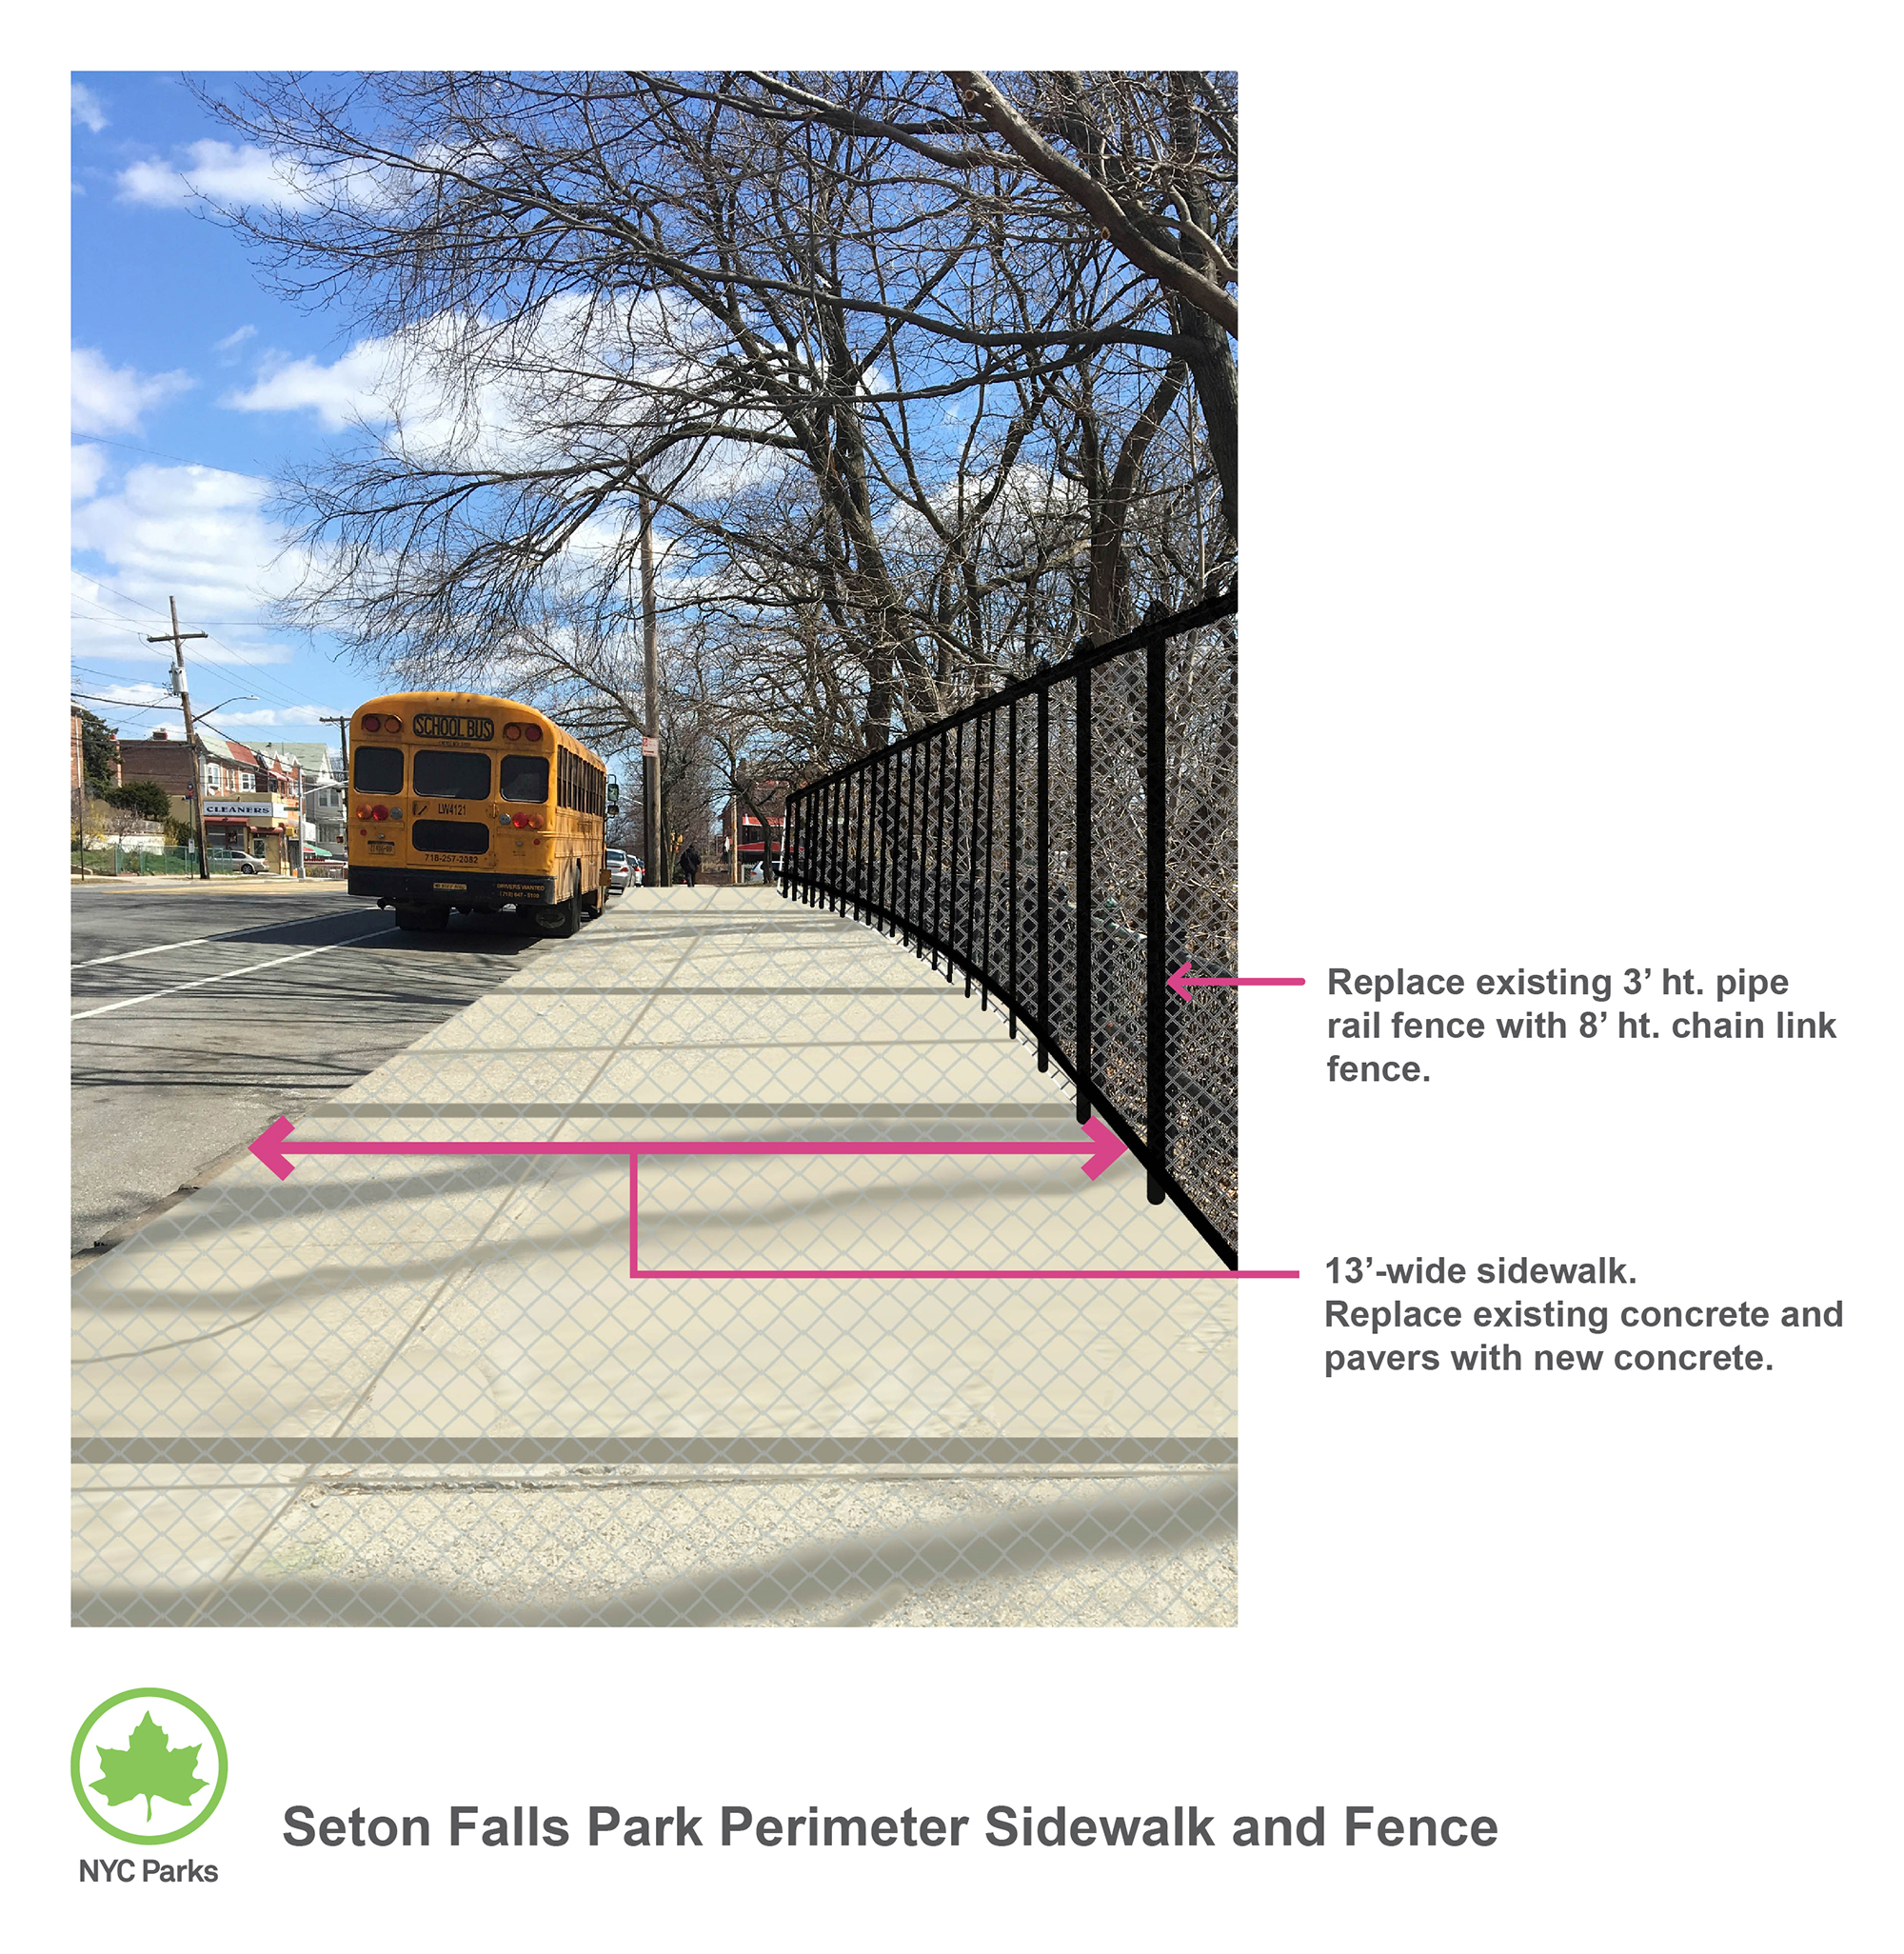 Design of Seton Falls Park Sidewalk and Fence Reconstruction